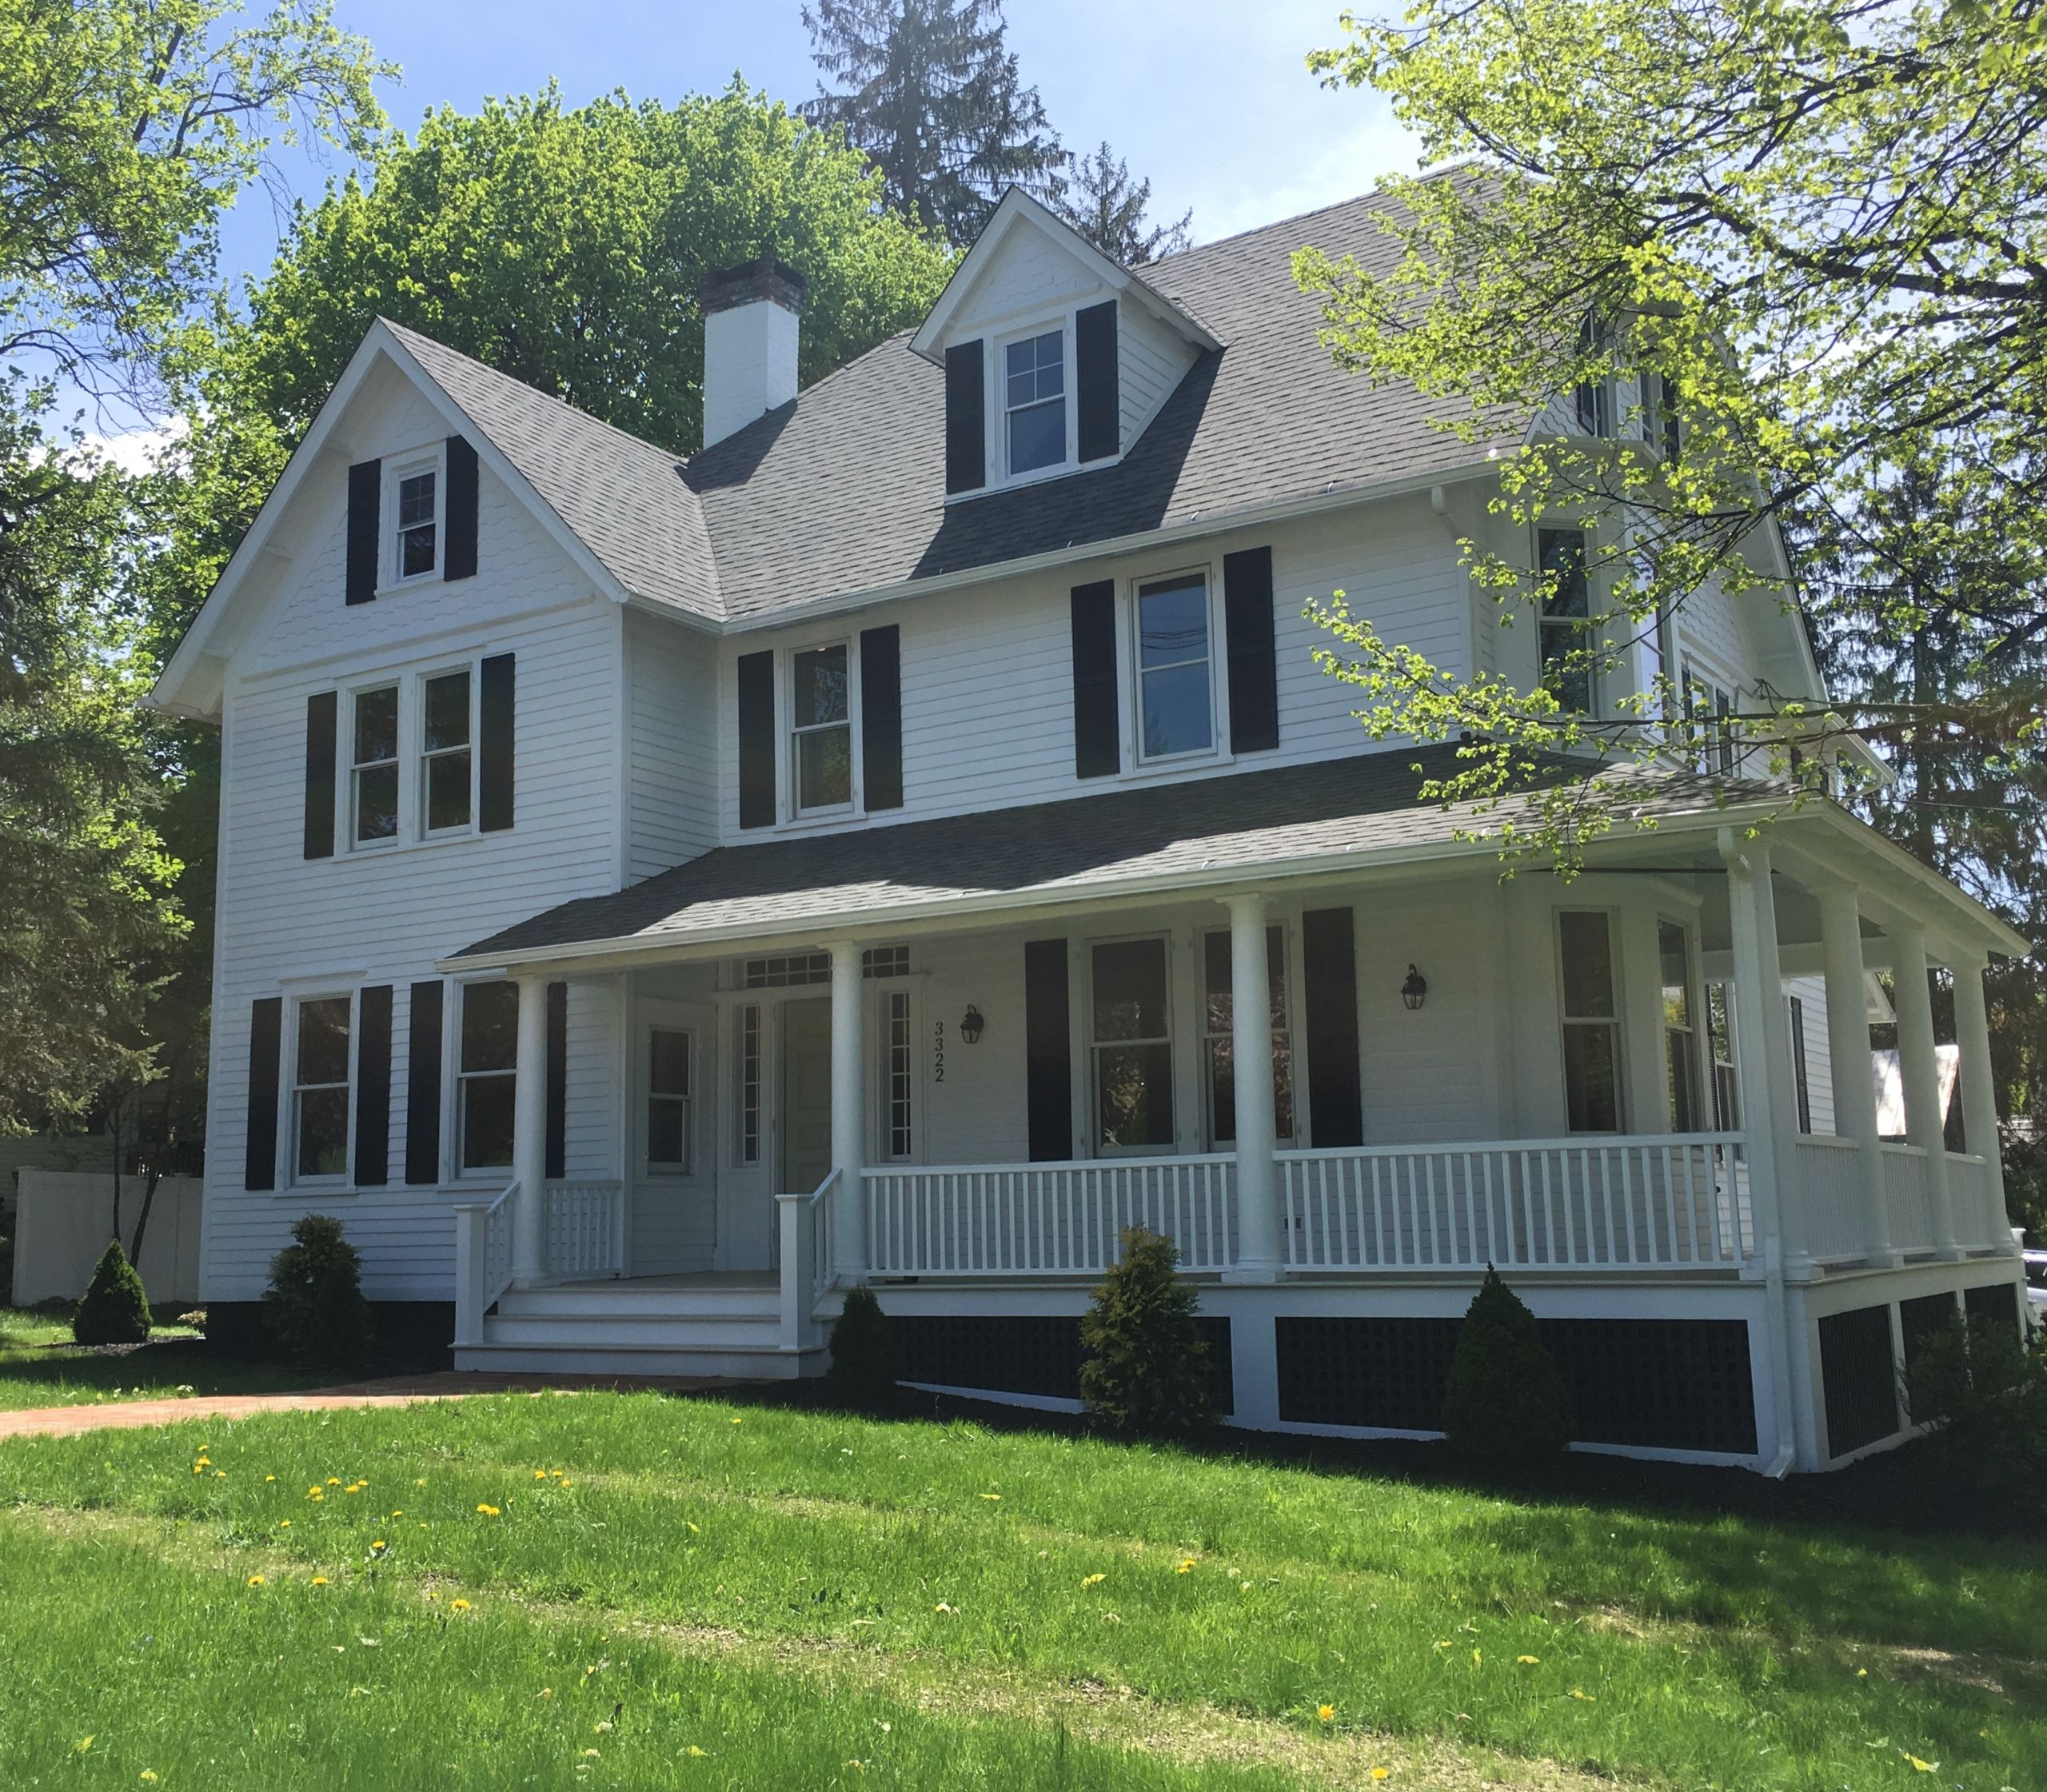 FEATURED LISTING:    Exquisitely Renovated Victorian Home in the Village of Millbrook $725,000